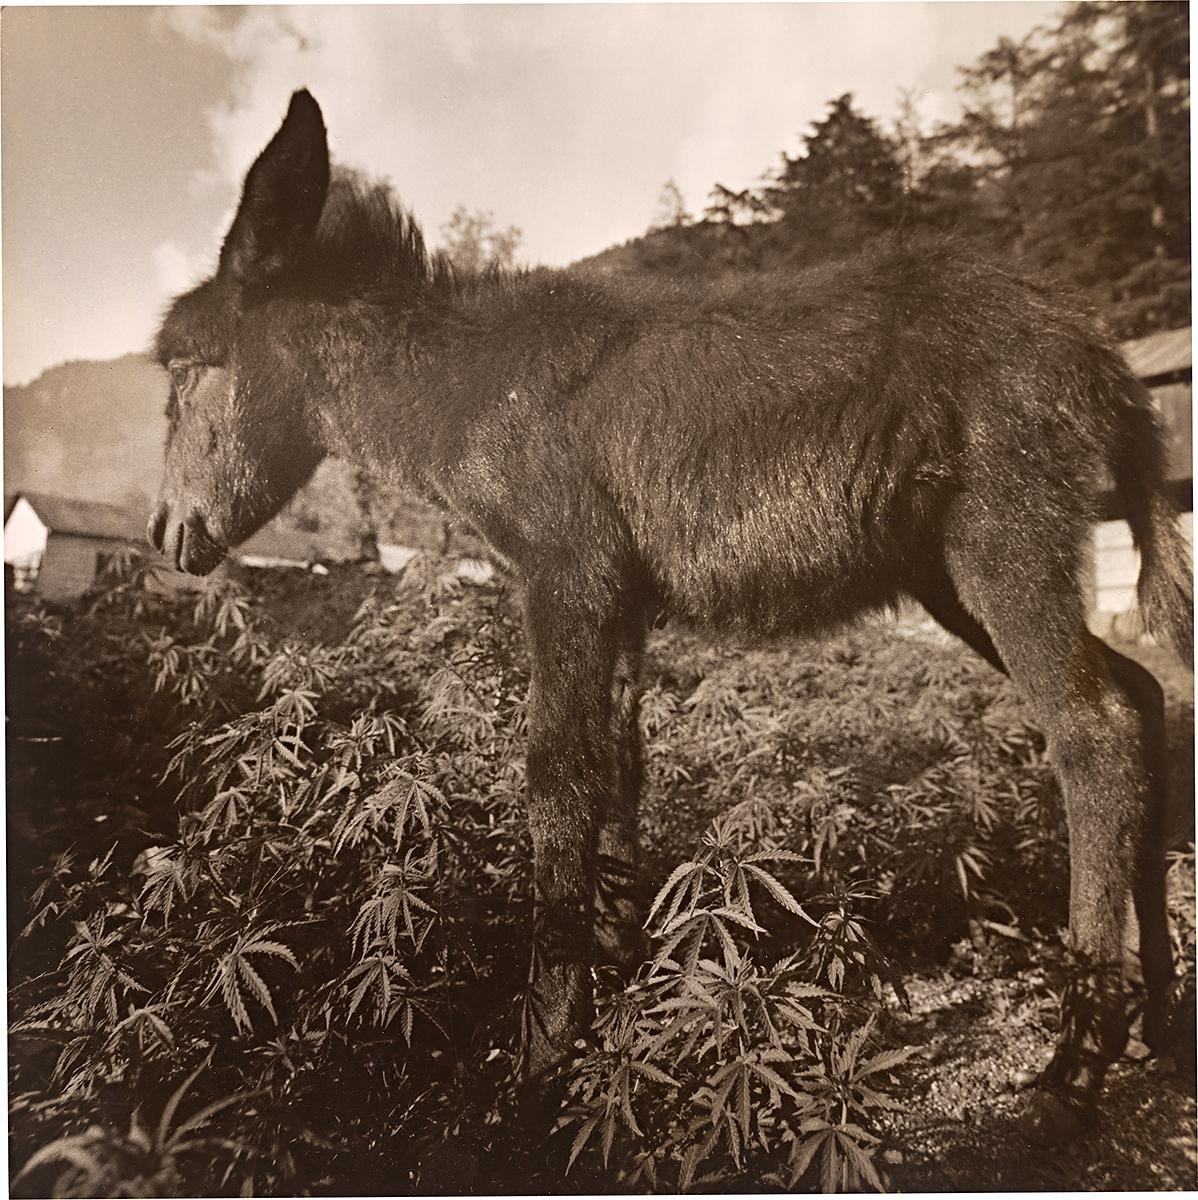 Small donkey growing up in marijhuana, Manali 1977